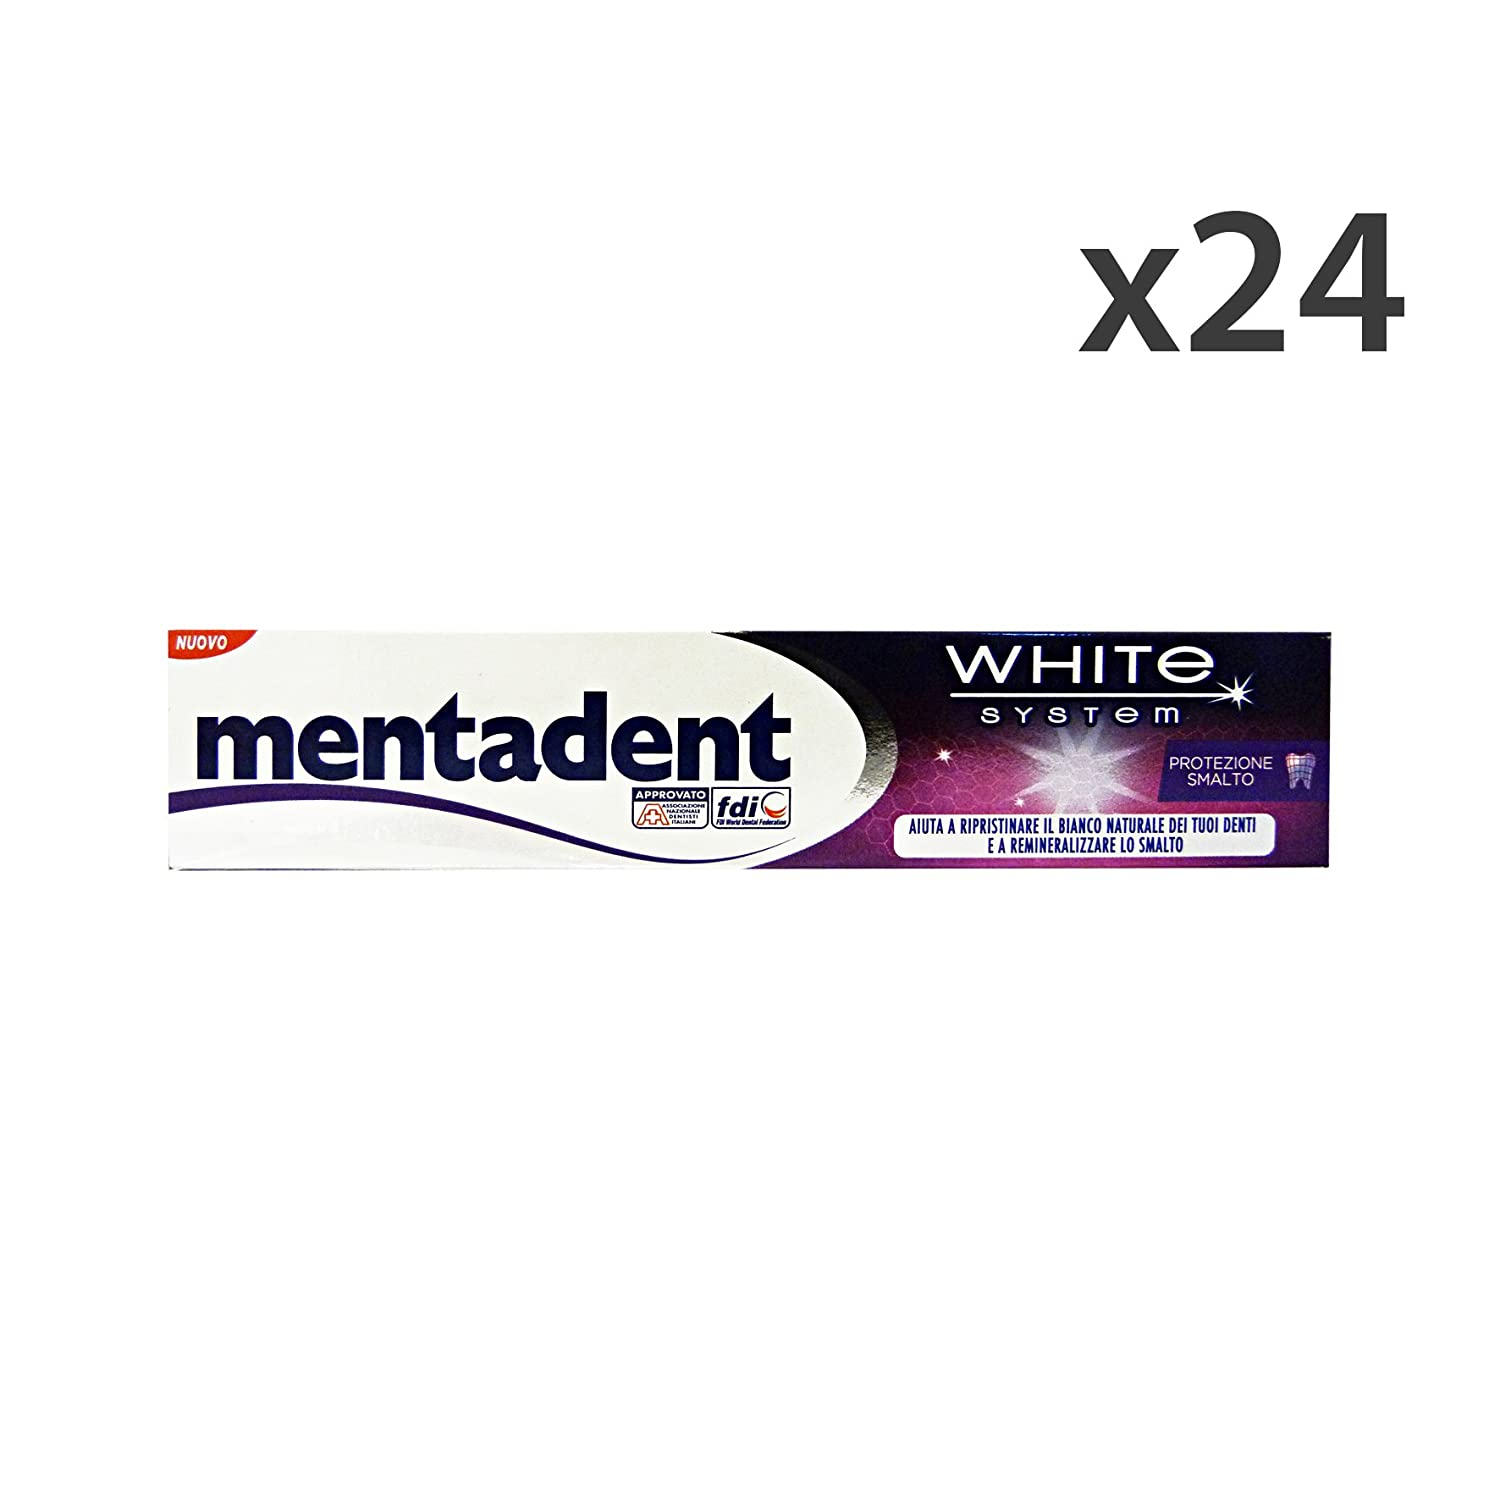 Set 24 MentaDENT Dentifricio WHITE S.Protezione Smalto 75 Ml. Hautpflege